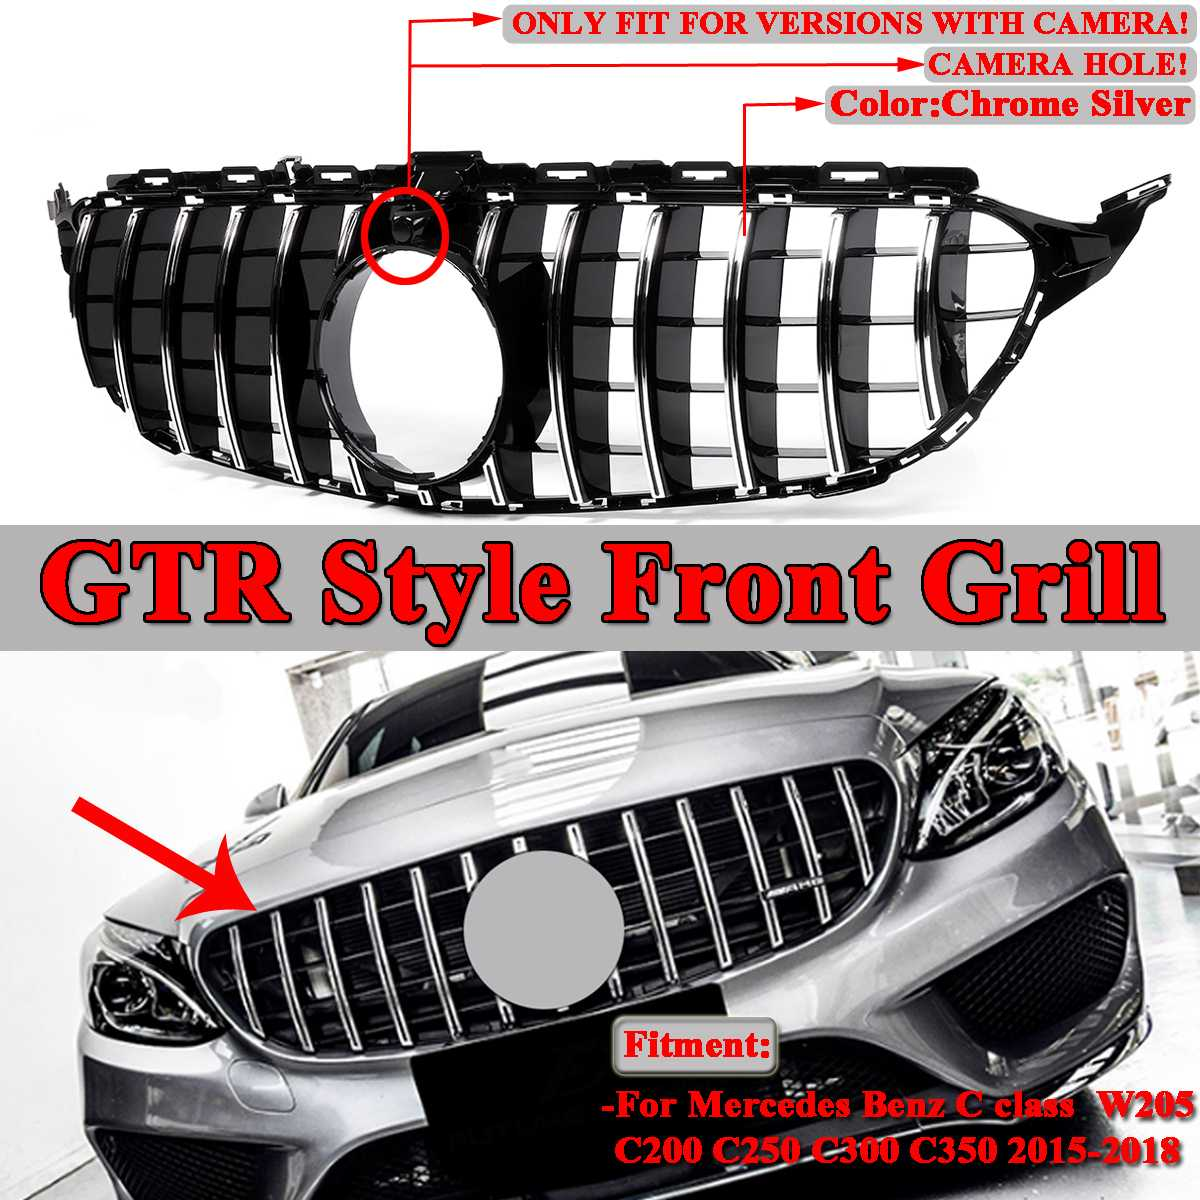 W205 C200 C250 C300 C350 2015-2018 2Dr/4Dr W205 GT R GTR Style Car Front Grill Grille With a Camera Hole For Mercedes For Benz